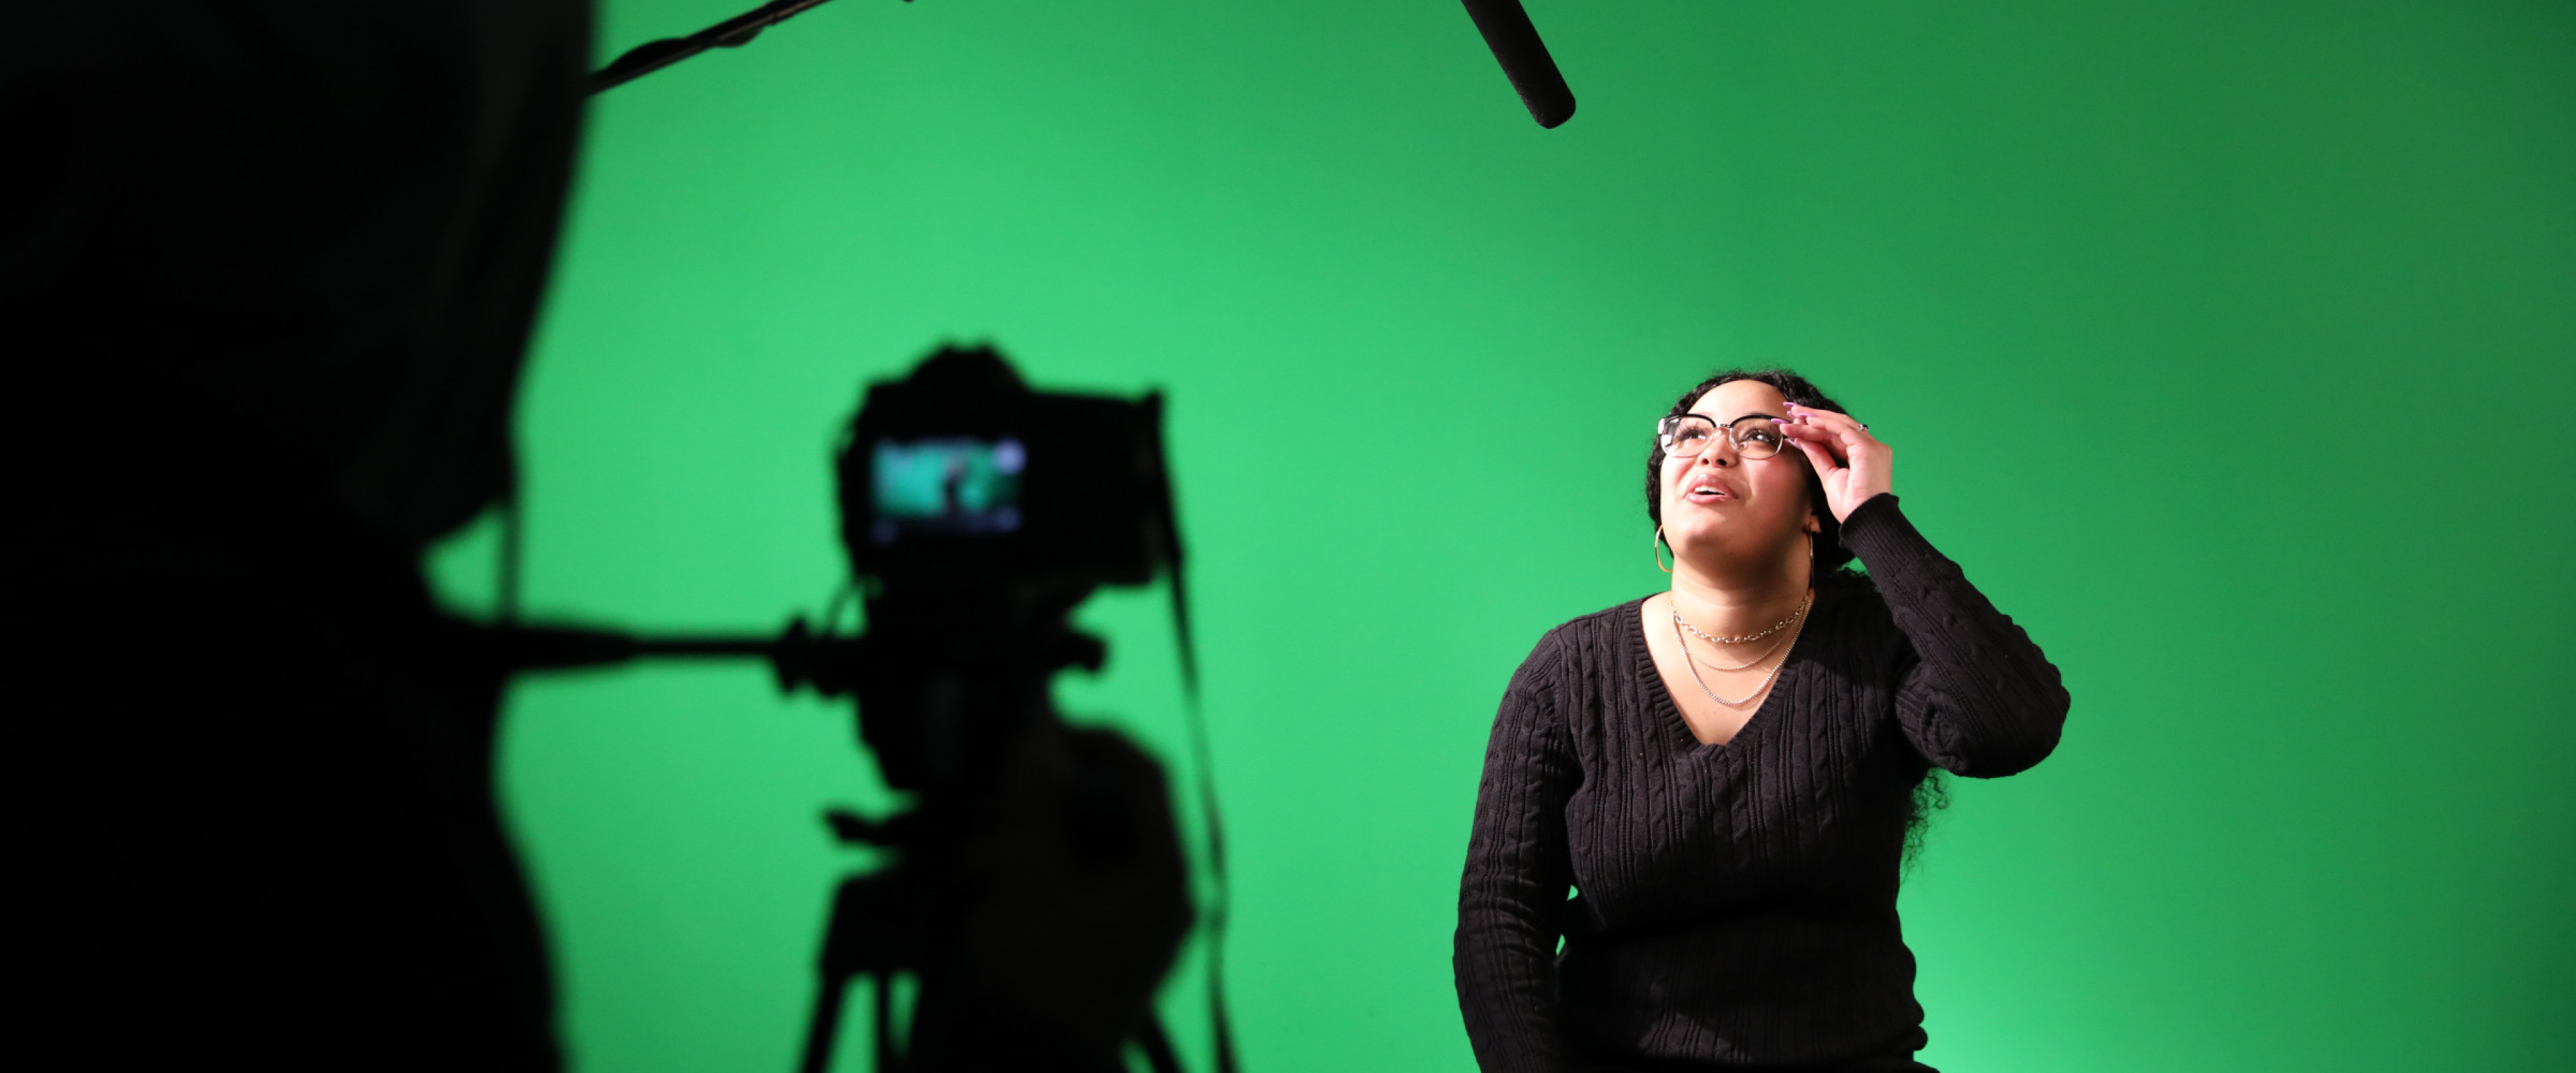 Student sitting behind camera with greenscreen